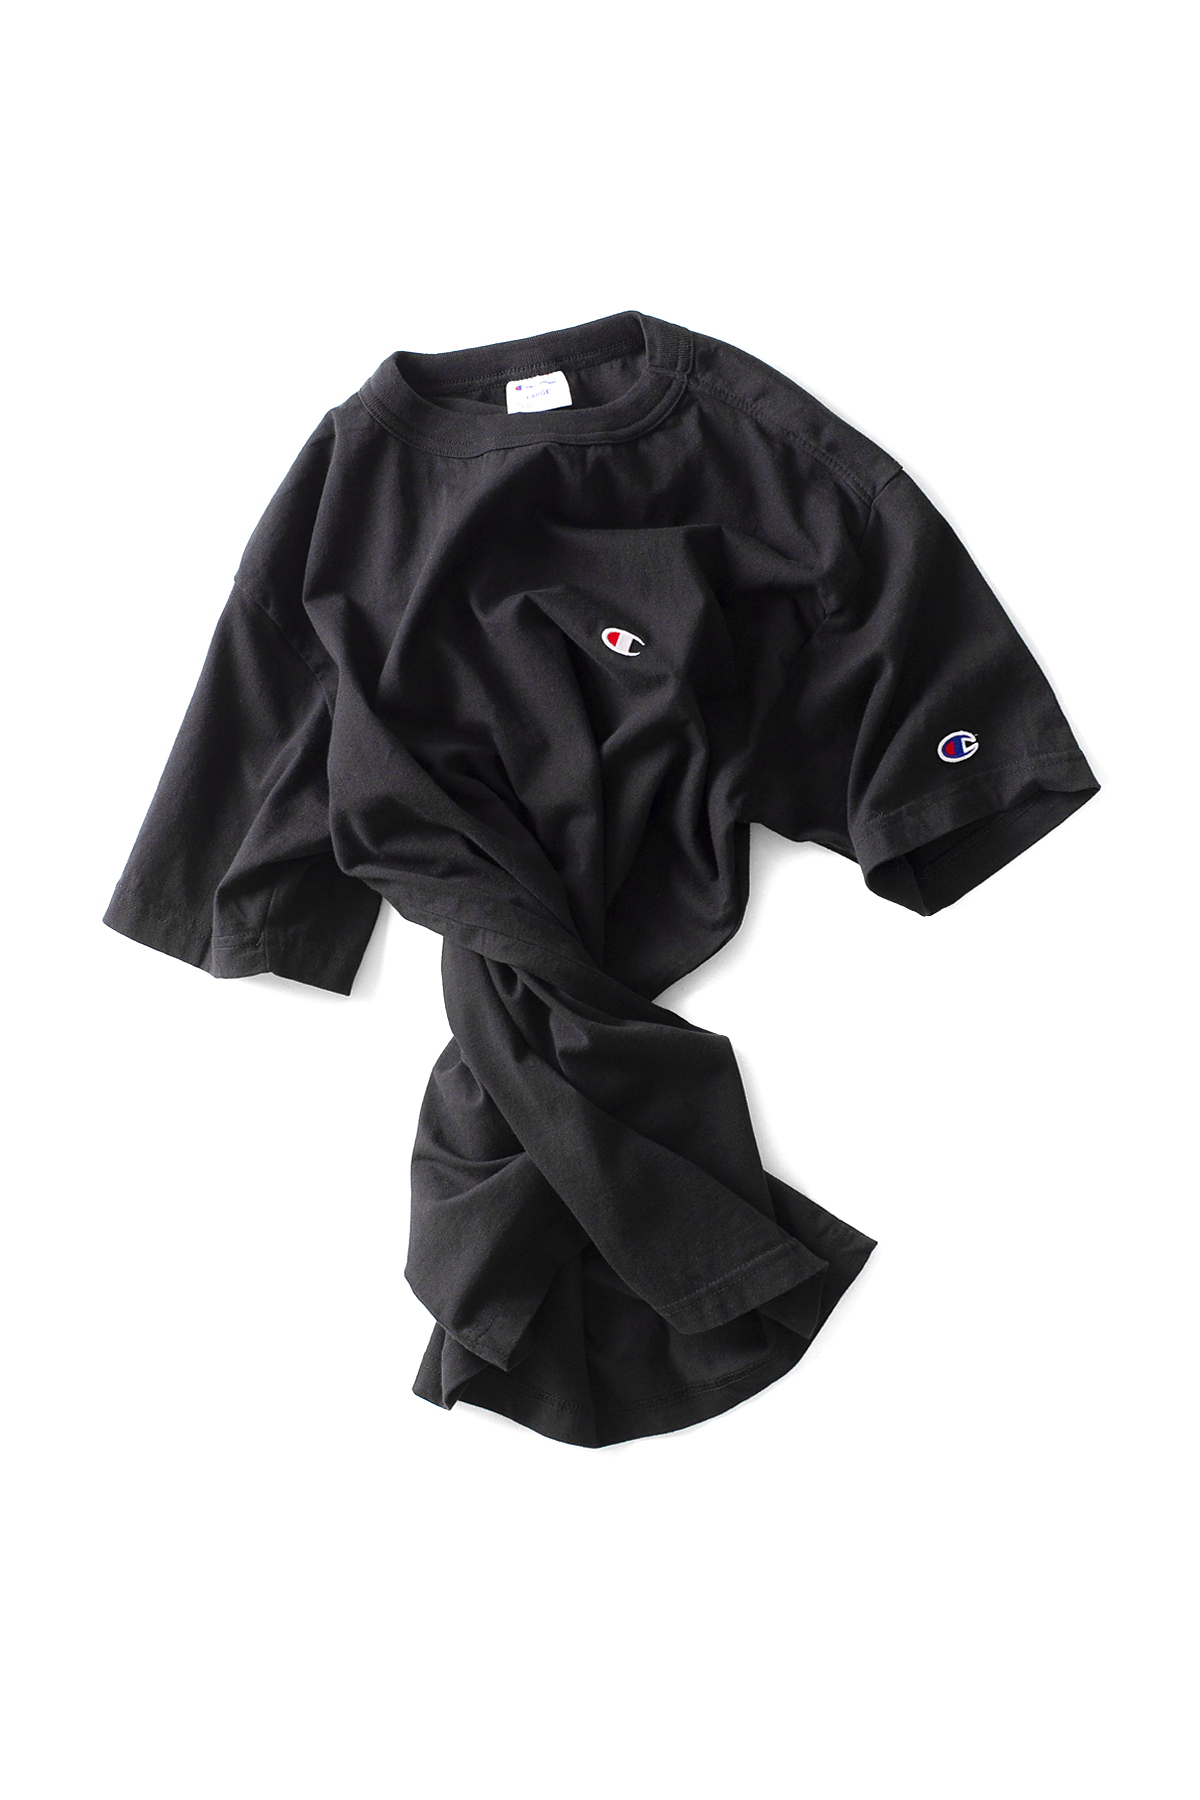 Champion : Basic T-Shirt (Black)